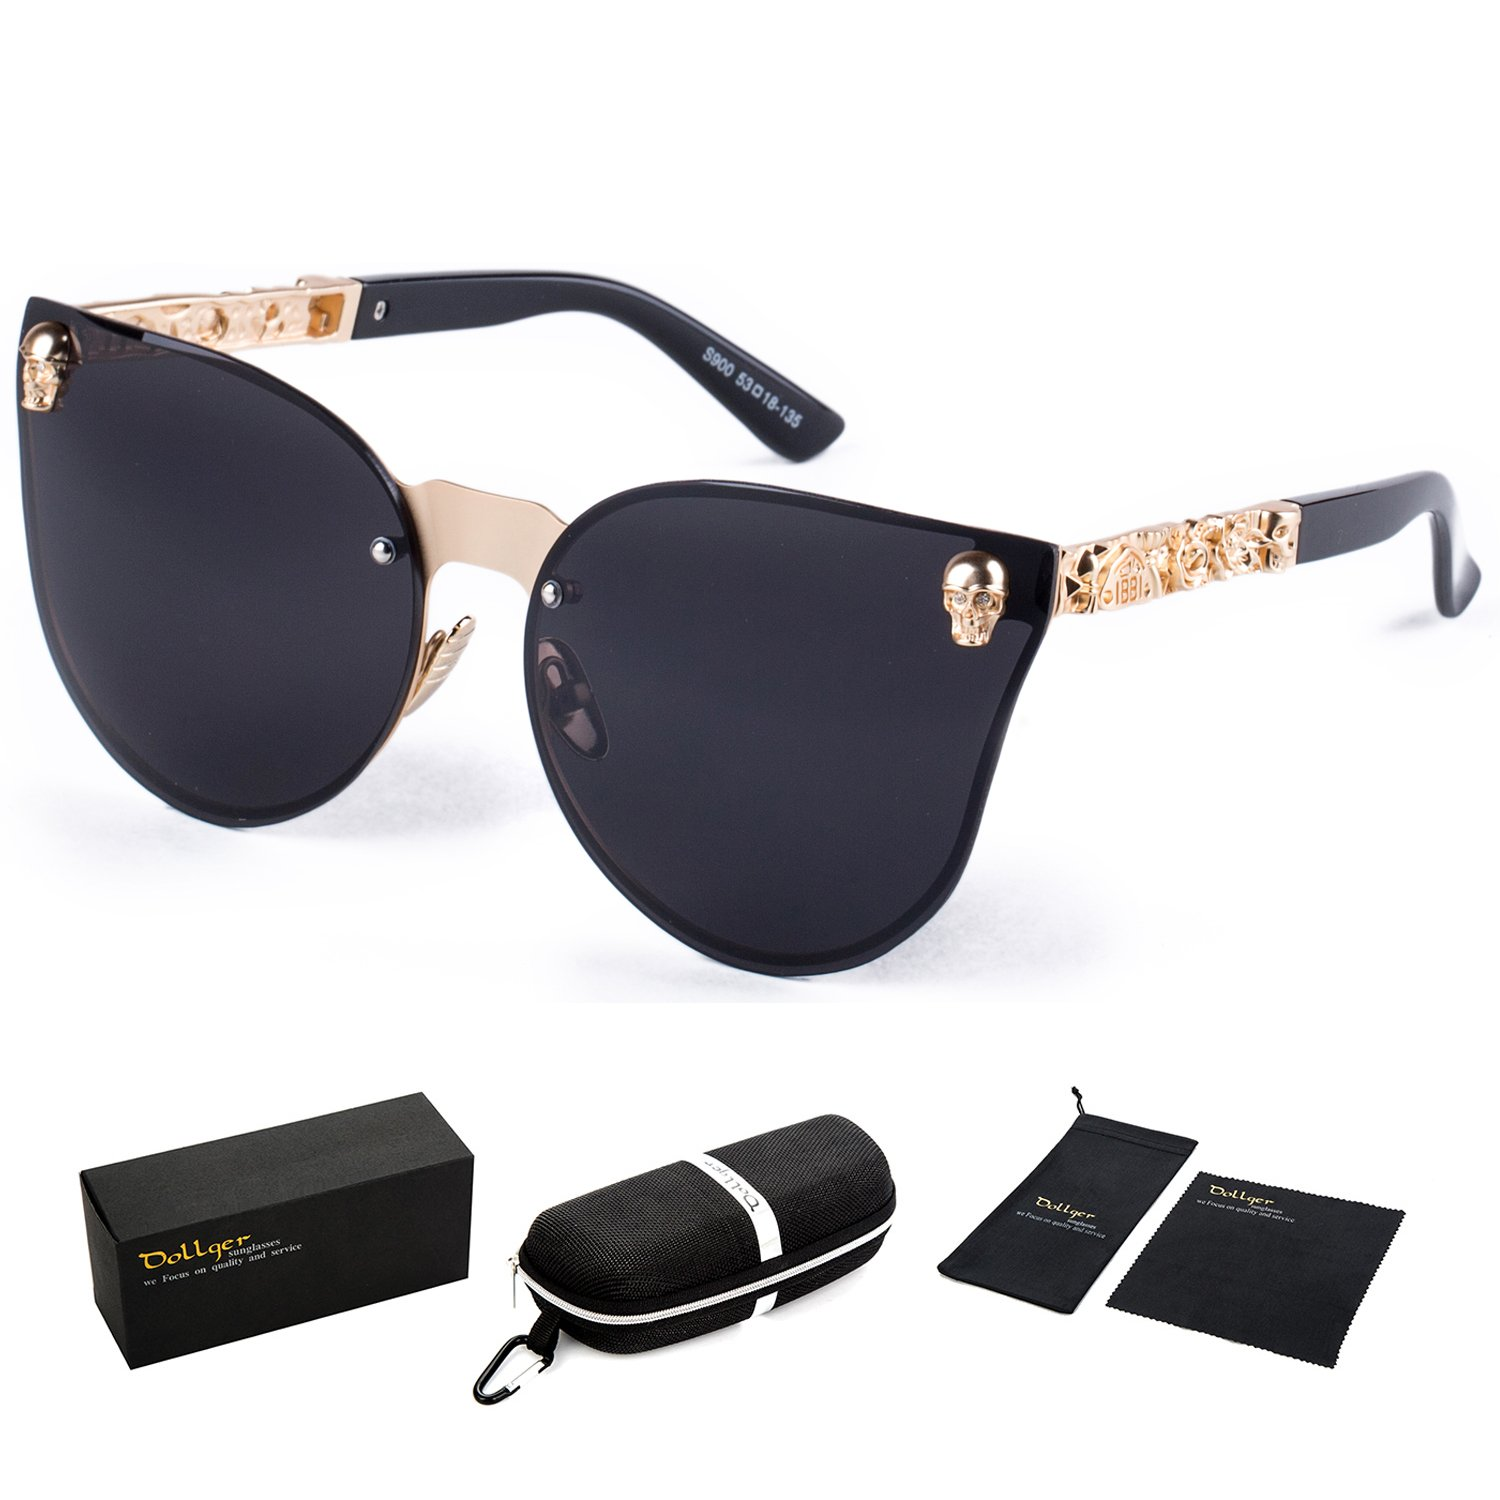 6310dc5fdd non-polarized. Lens width  66 millimeters. THE SKULL AND CAT EYE DESIGNS -  Sunglasses collection remains true to its classic heritage while  continuously ...